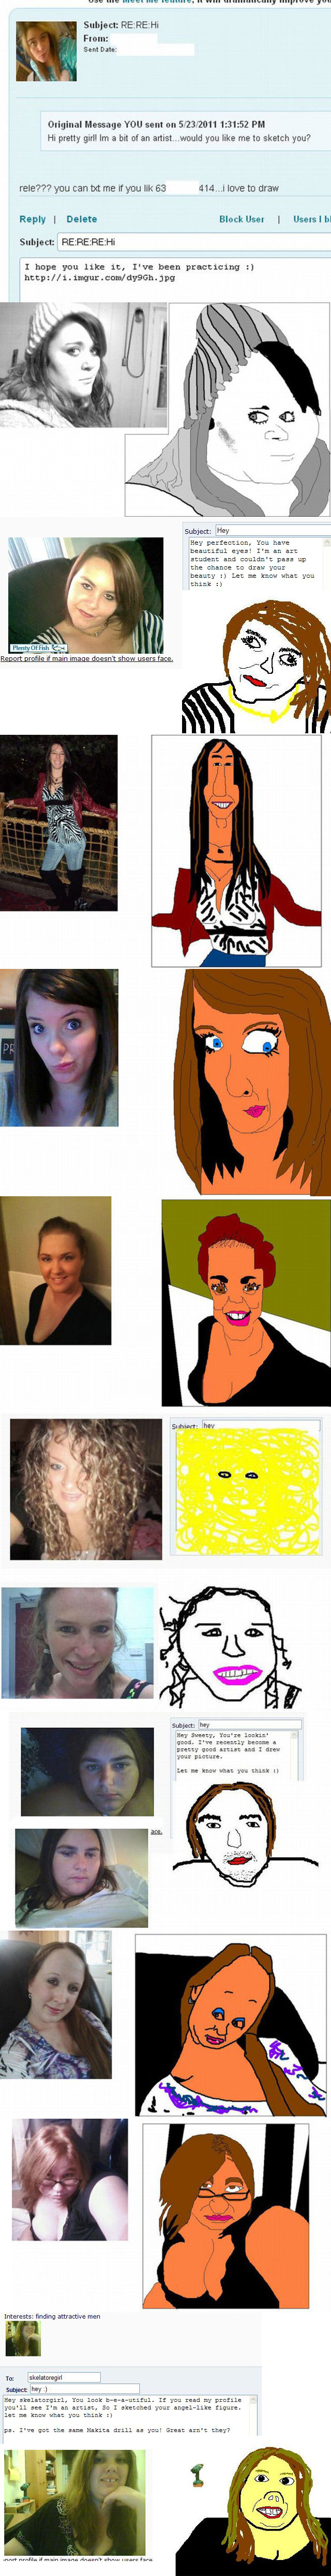 Ms paint drawings dating site